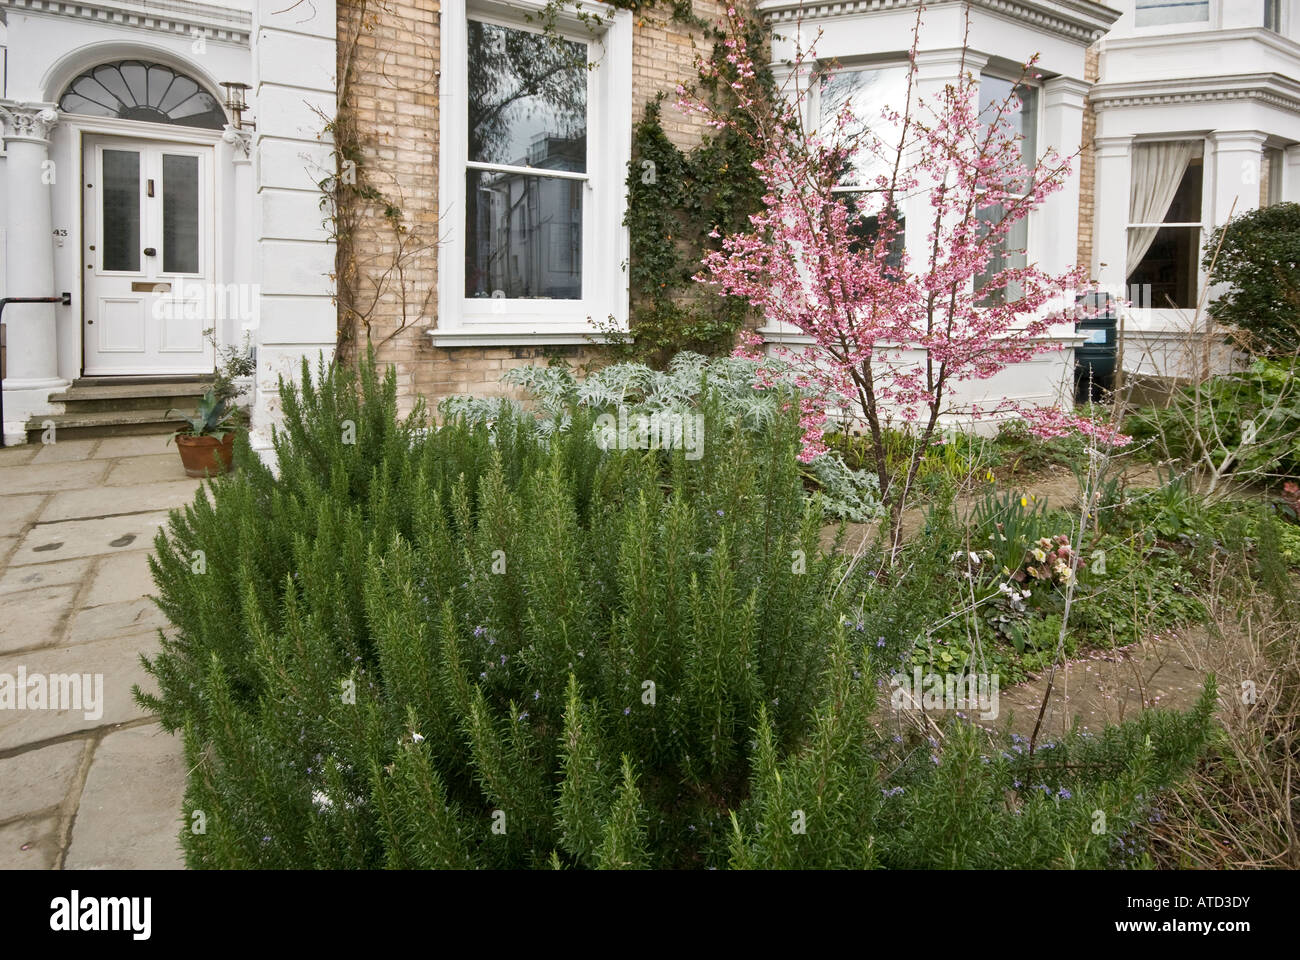 Town formal garden Victorian house - Stock Image